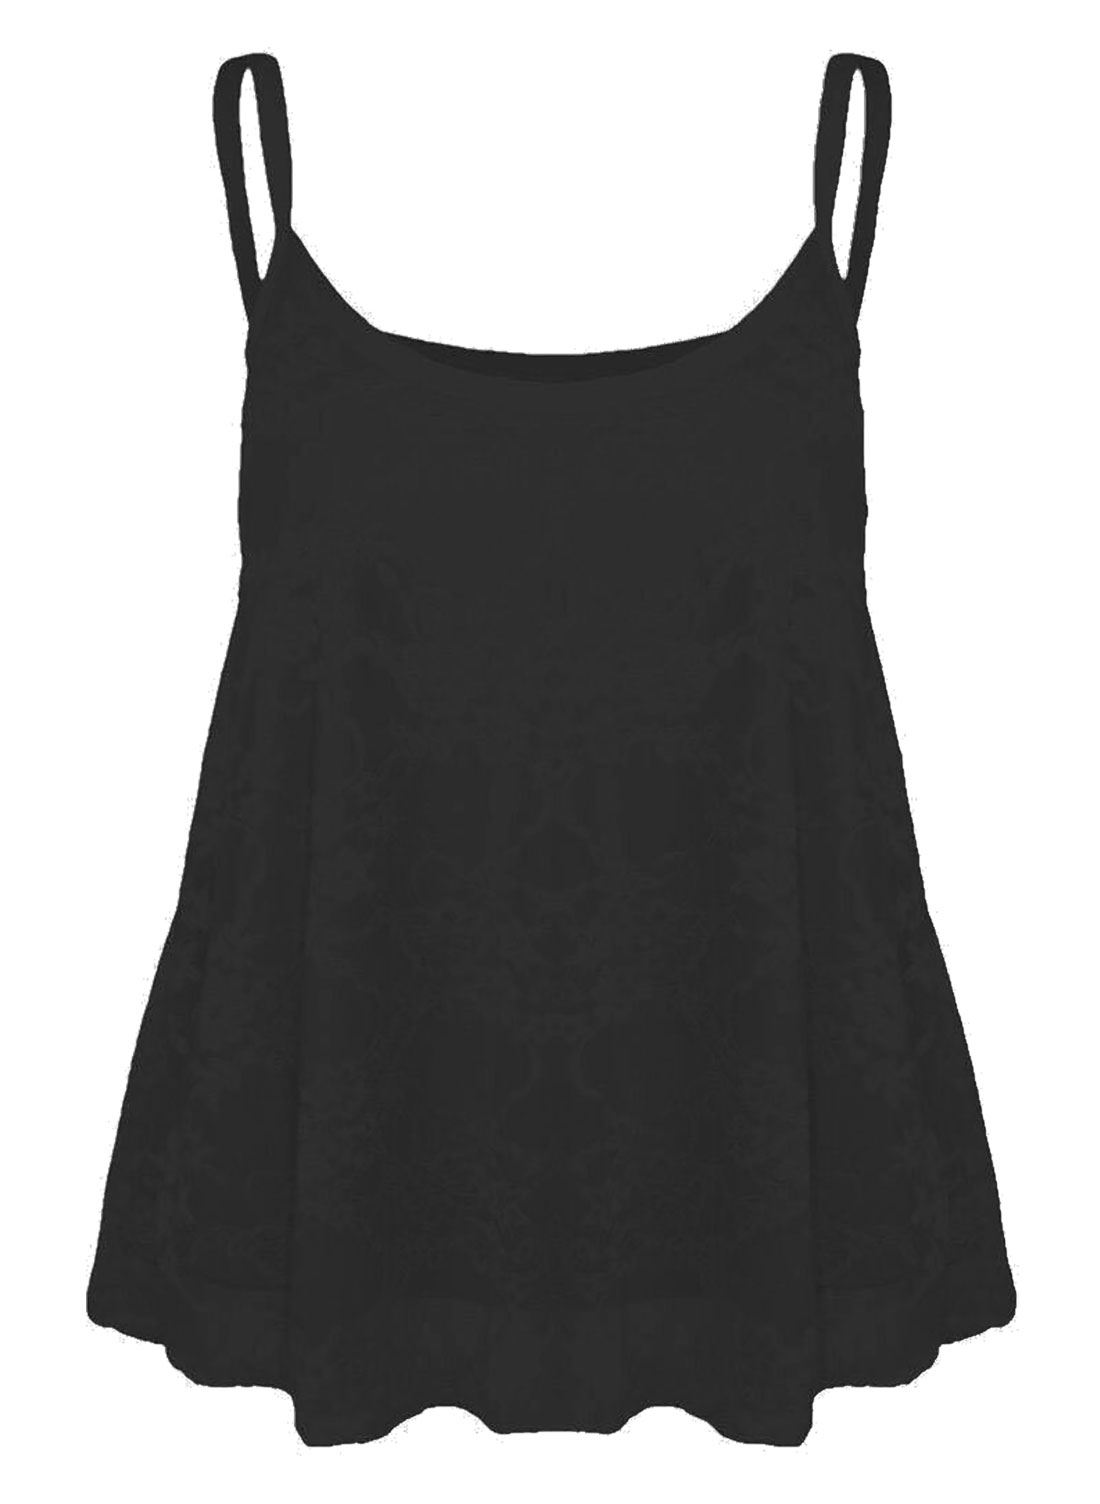 5928f7eb56a6a ... Camisole Vest Ladies Sleeveless Strappy Cami Flared Swing Top Black XL  UK 16-18 US 12-14 EU 44-46. About this product. Picture 1 of 2  Picture 2  of 2